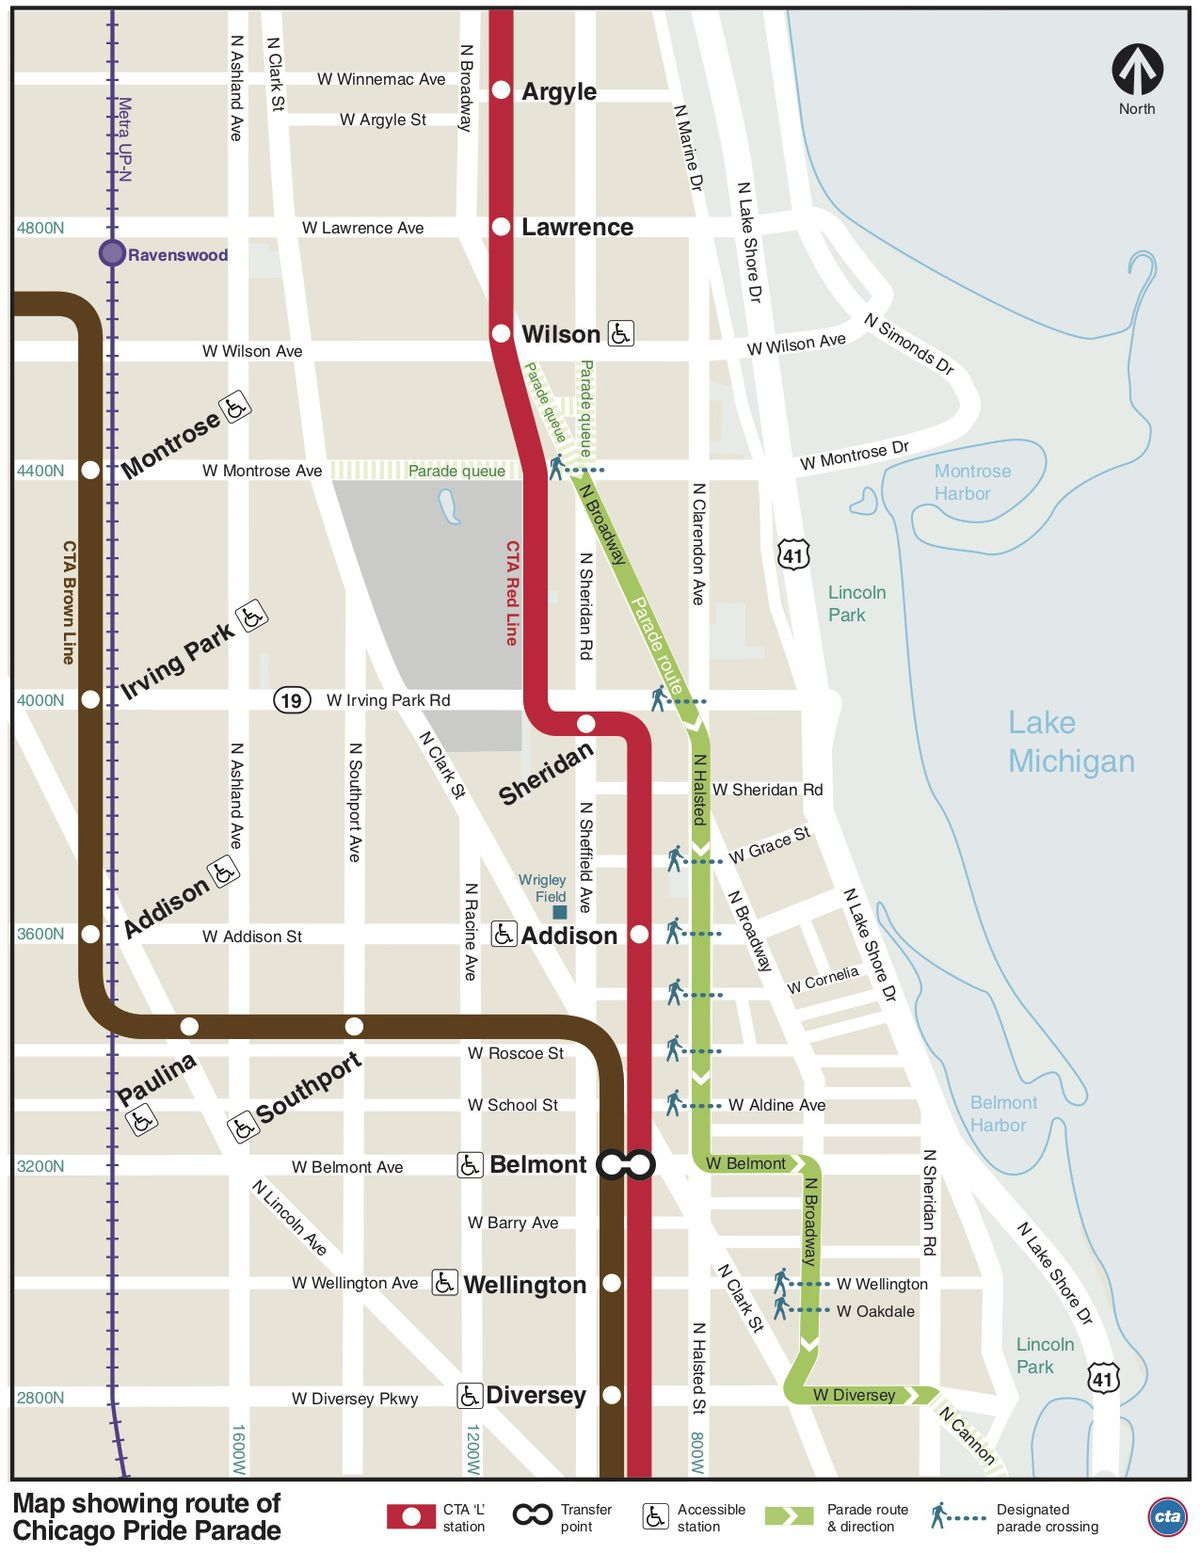 Chicago Subway Map With Streets.Pride Parade 2019 Chicago Start Time Route Street Closures